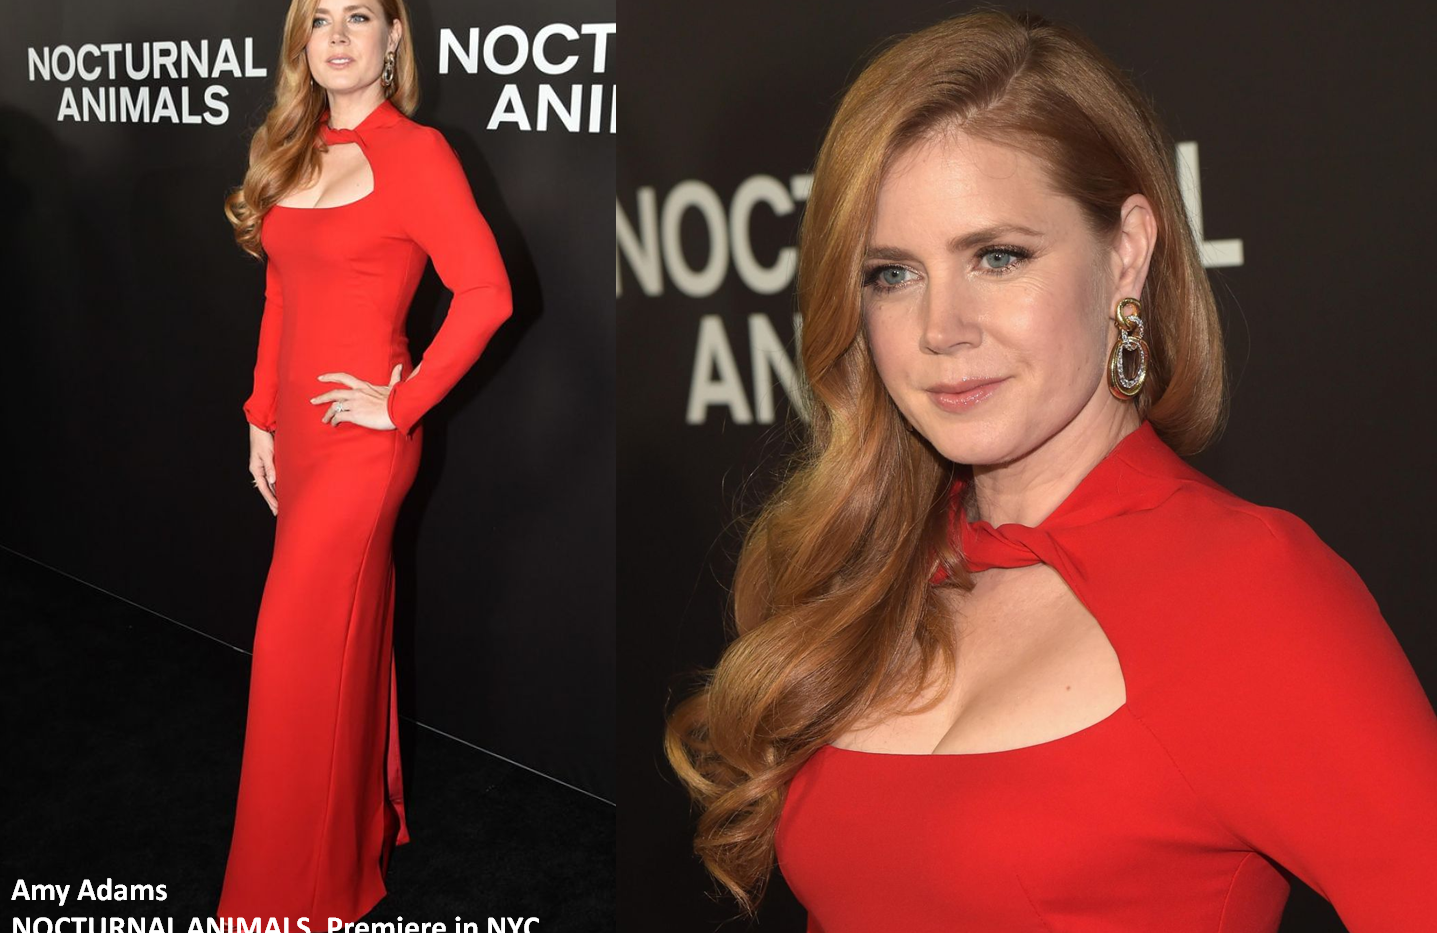 "Amy Adams at ""Nocturnal Animals"" premiere in NewYork wearing red gown - Project for TOM FORD - pattern making - dressmaking - fitting / tailoring - managing - garment technology consult"